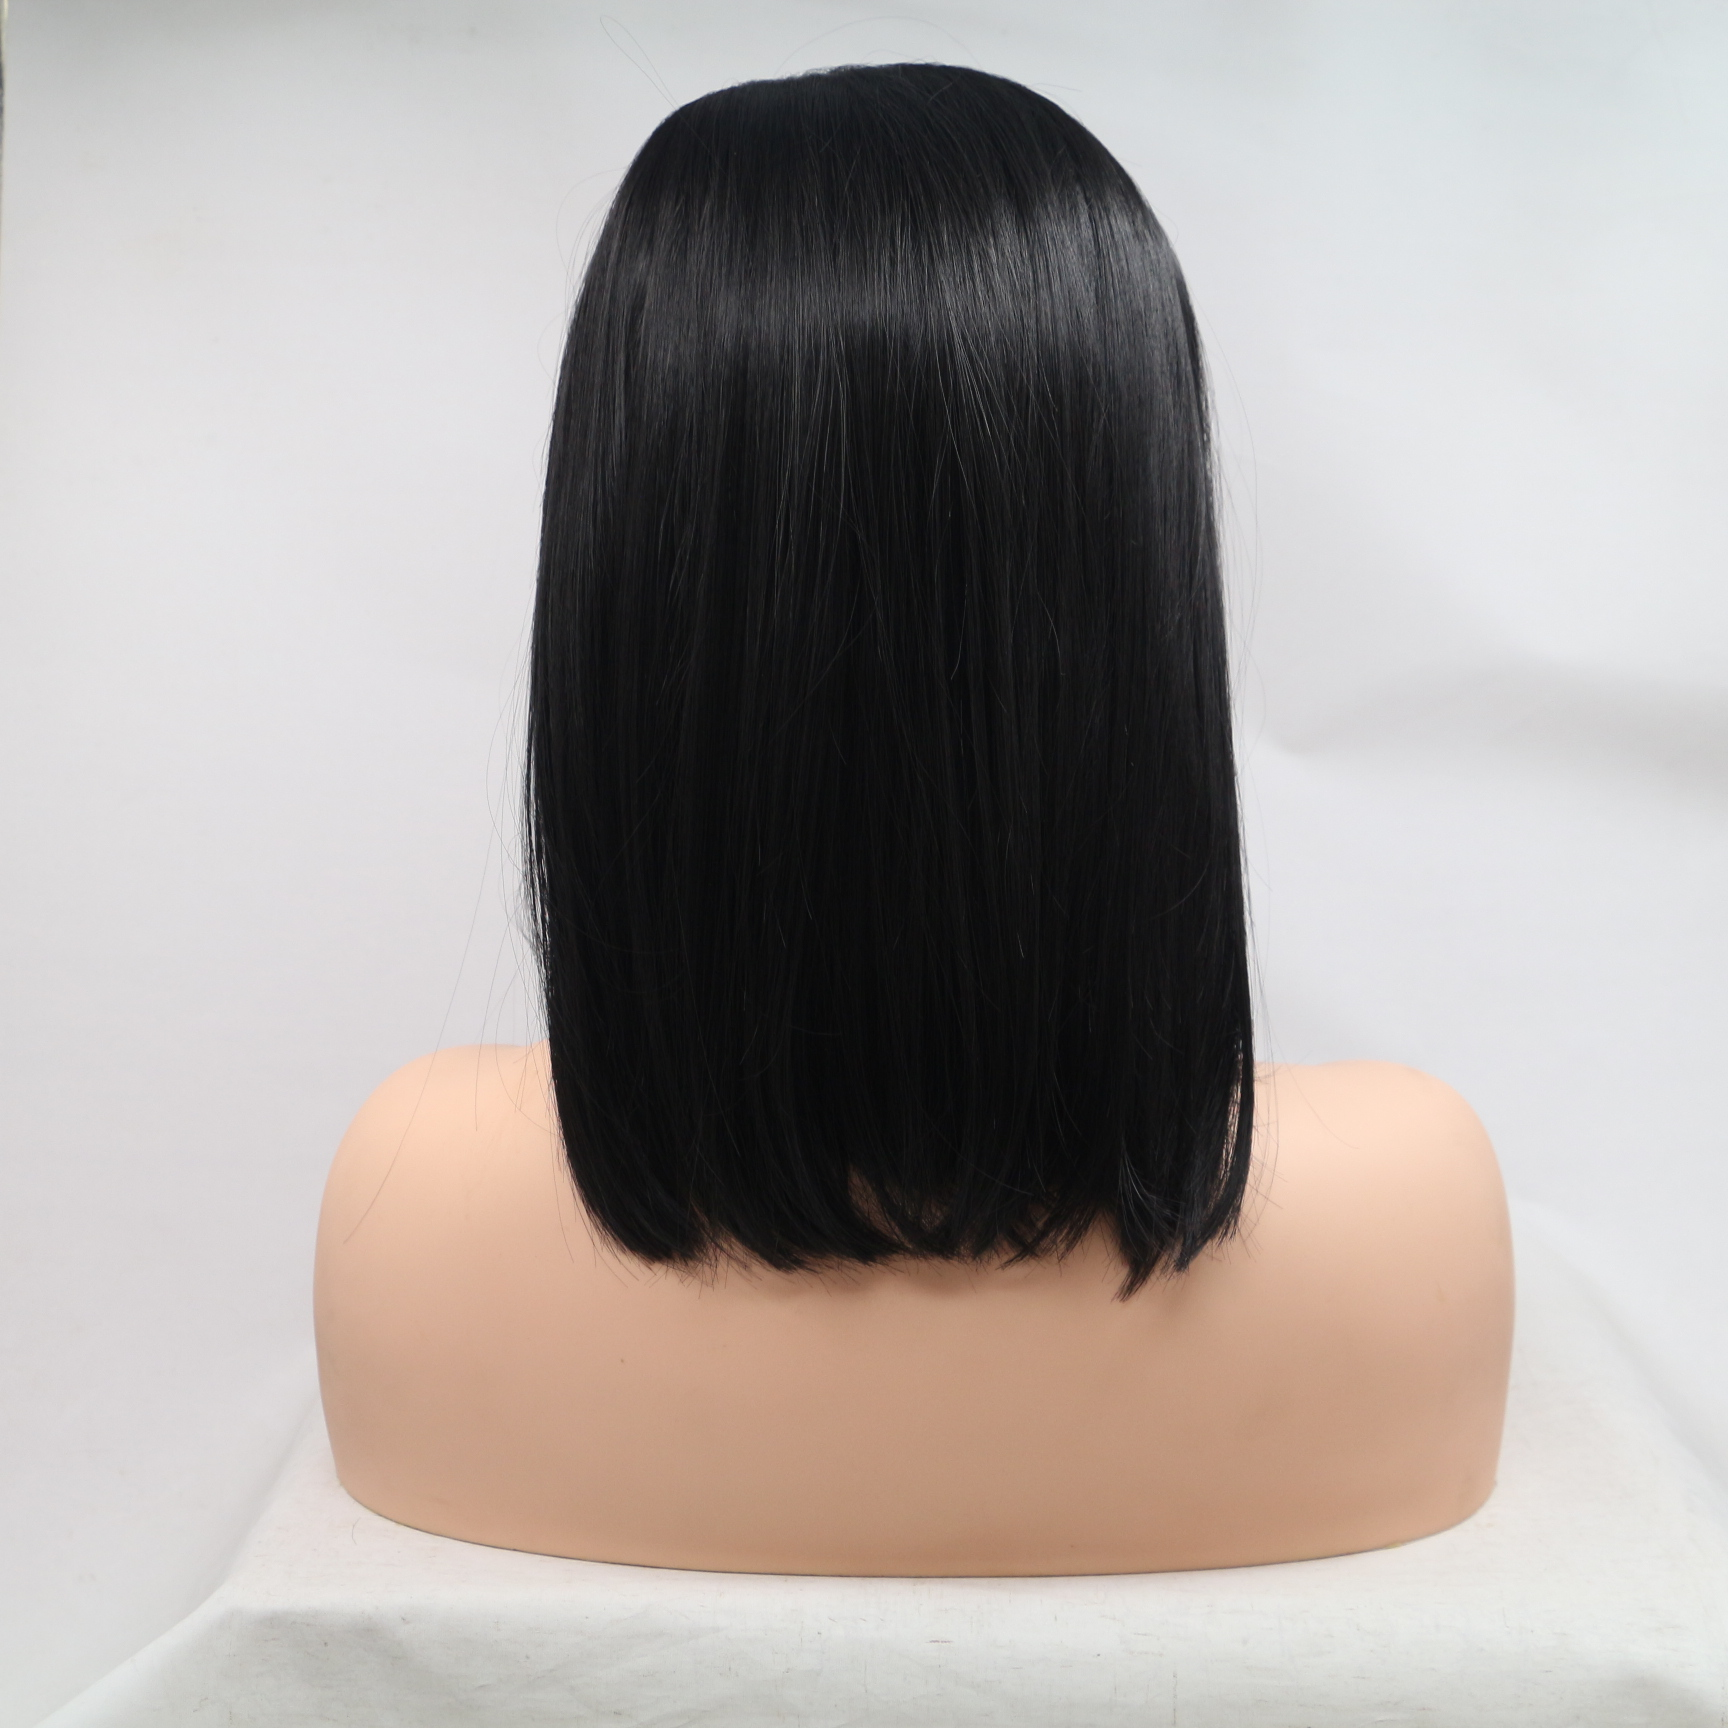 Pixie Wig Lace front Wig One Side Long One Side Short Popular in USA WK180